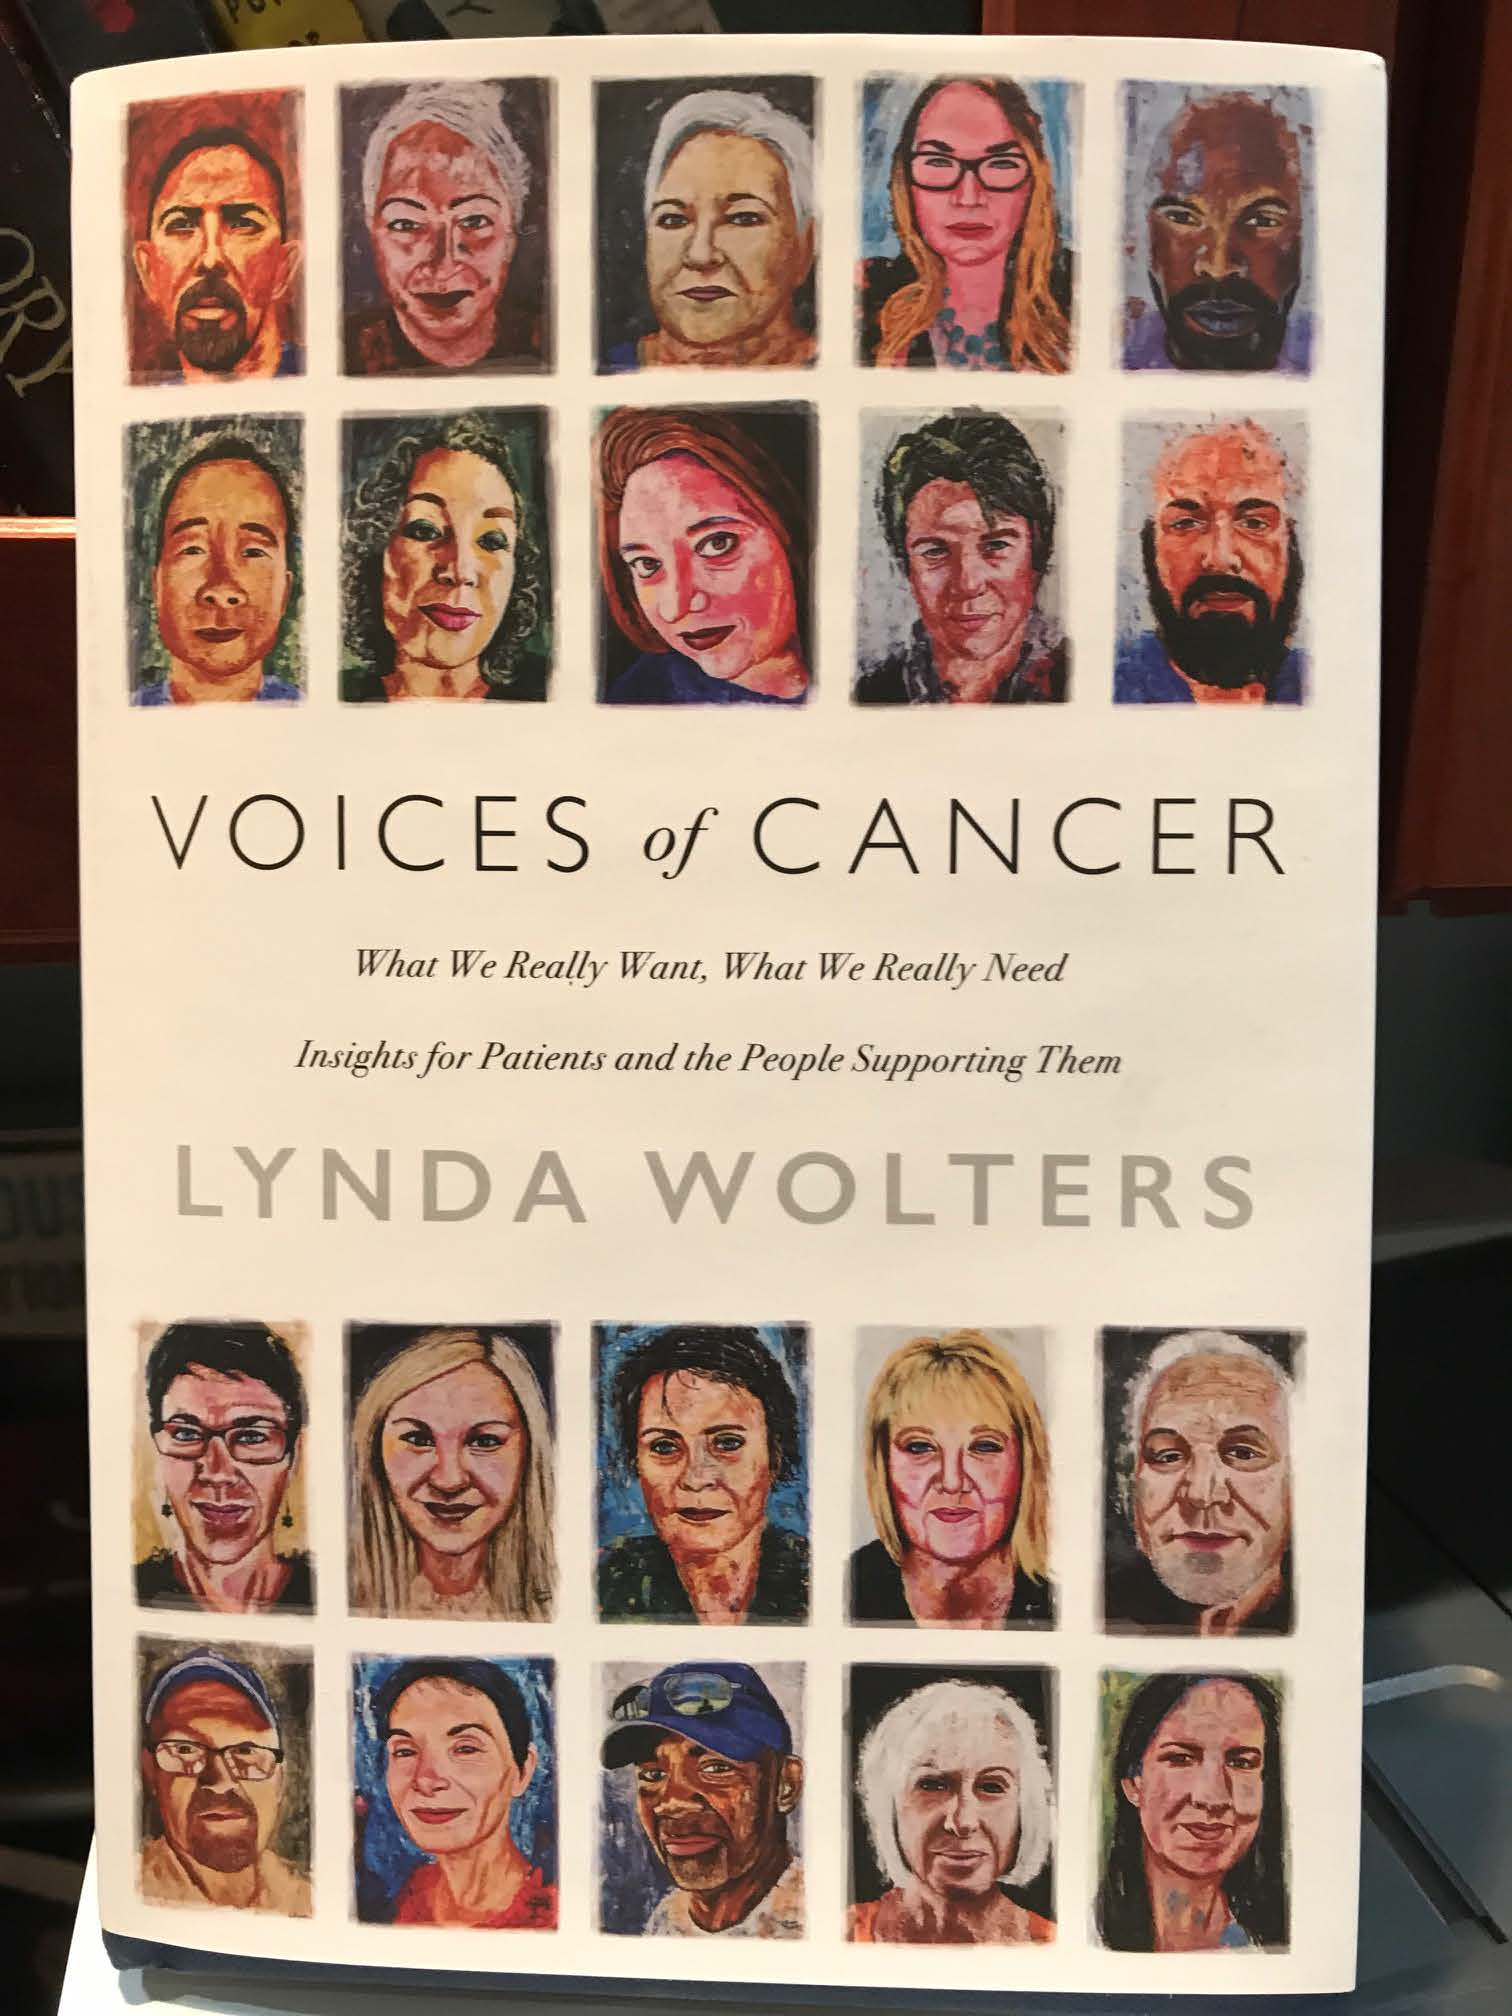 Picture of the cover of Voices of Cancer book by Lynda Wolters